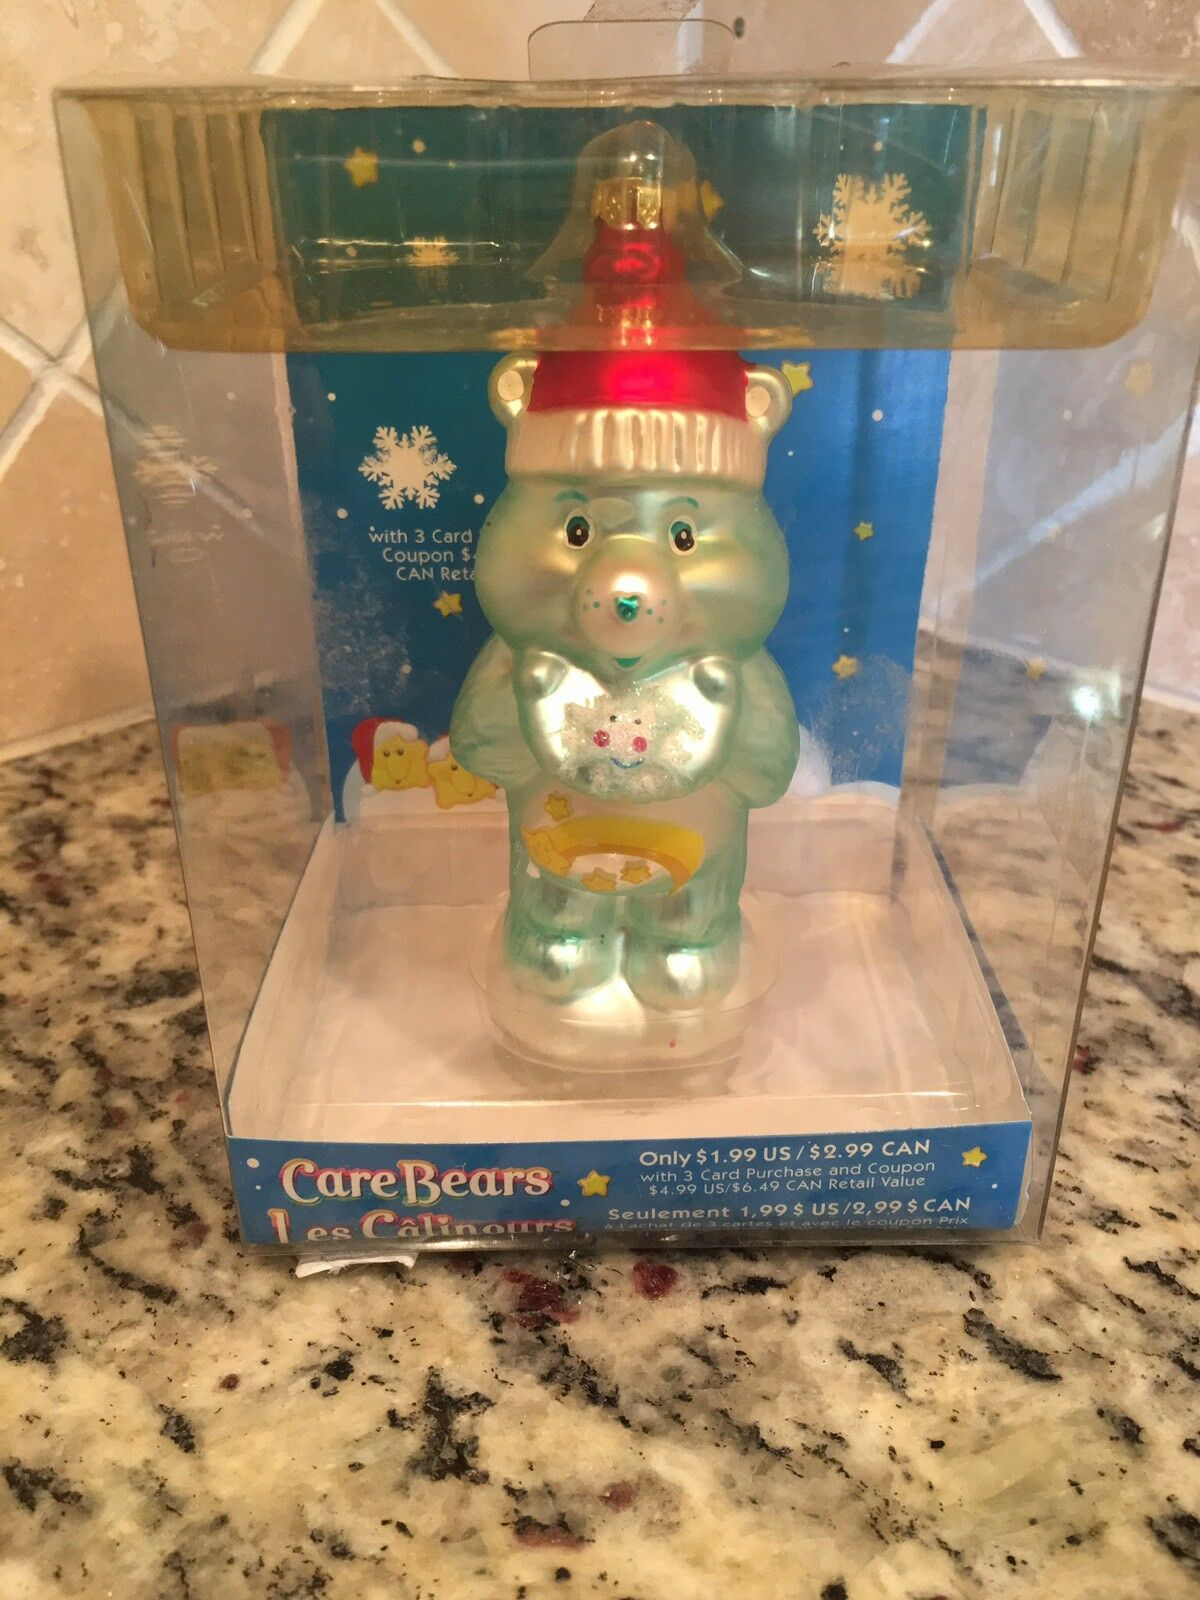 American greetings 2005 care bears wish bear glass blown ornament picture 1 of 6 kristyandbryce Choice Image